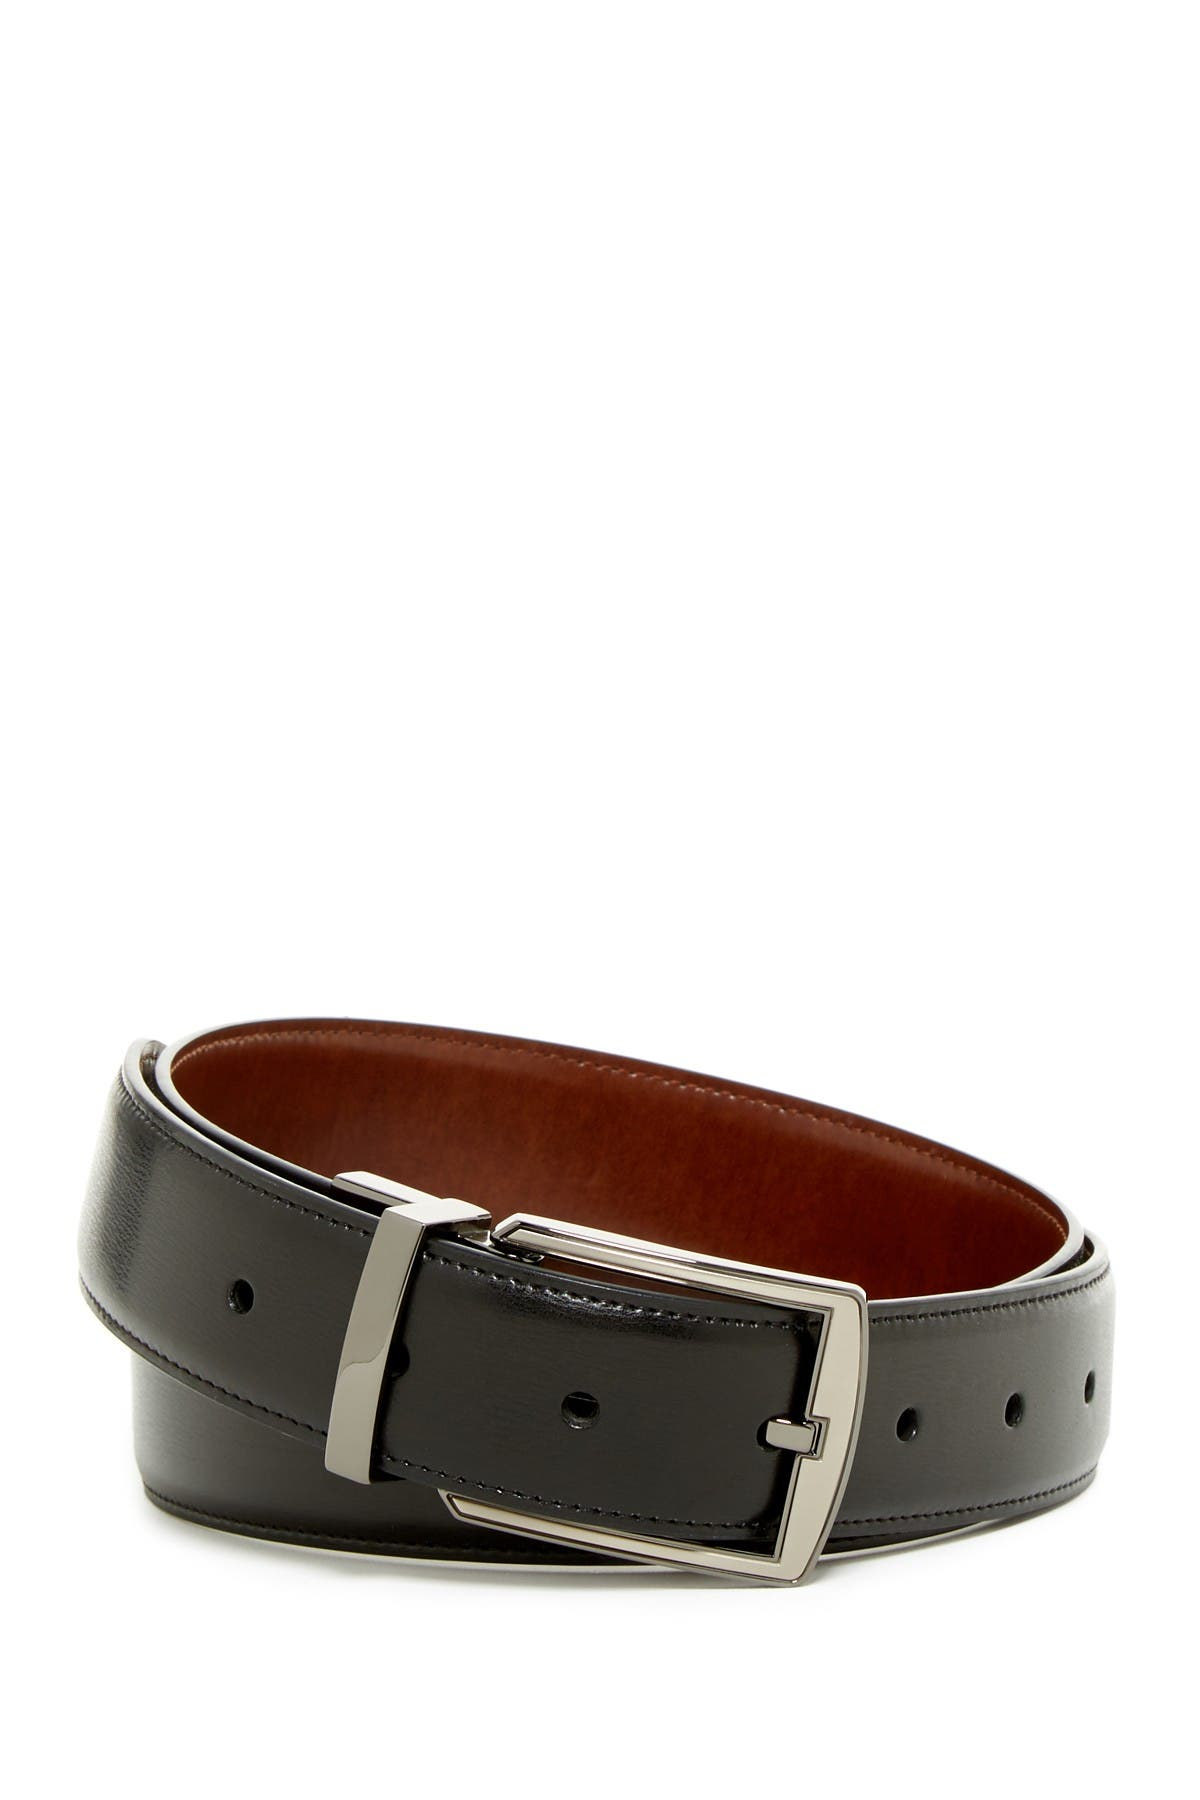 Image of Original Penguin Reversible Leather Belt